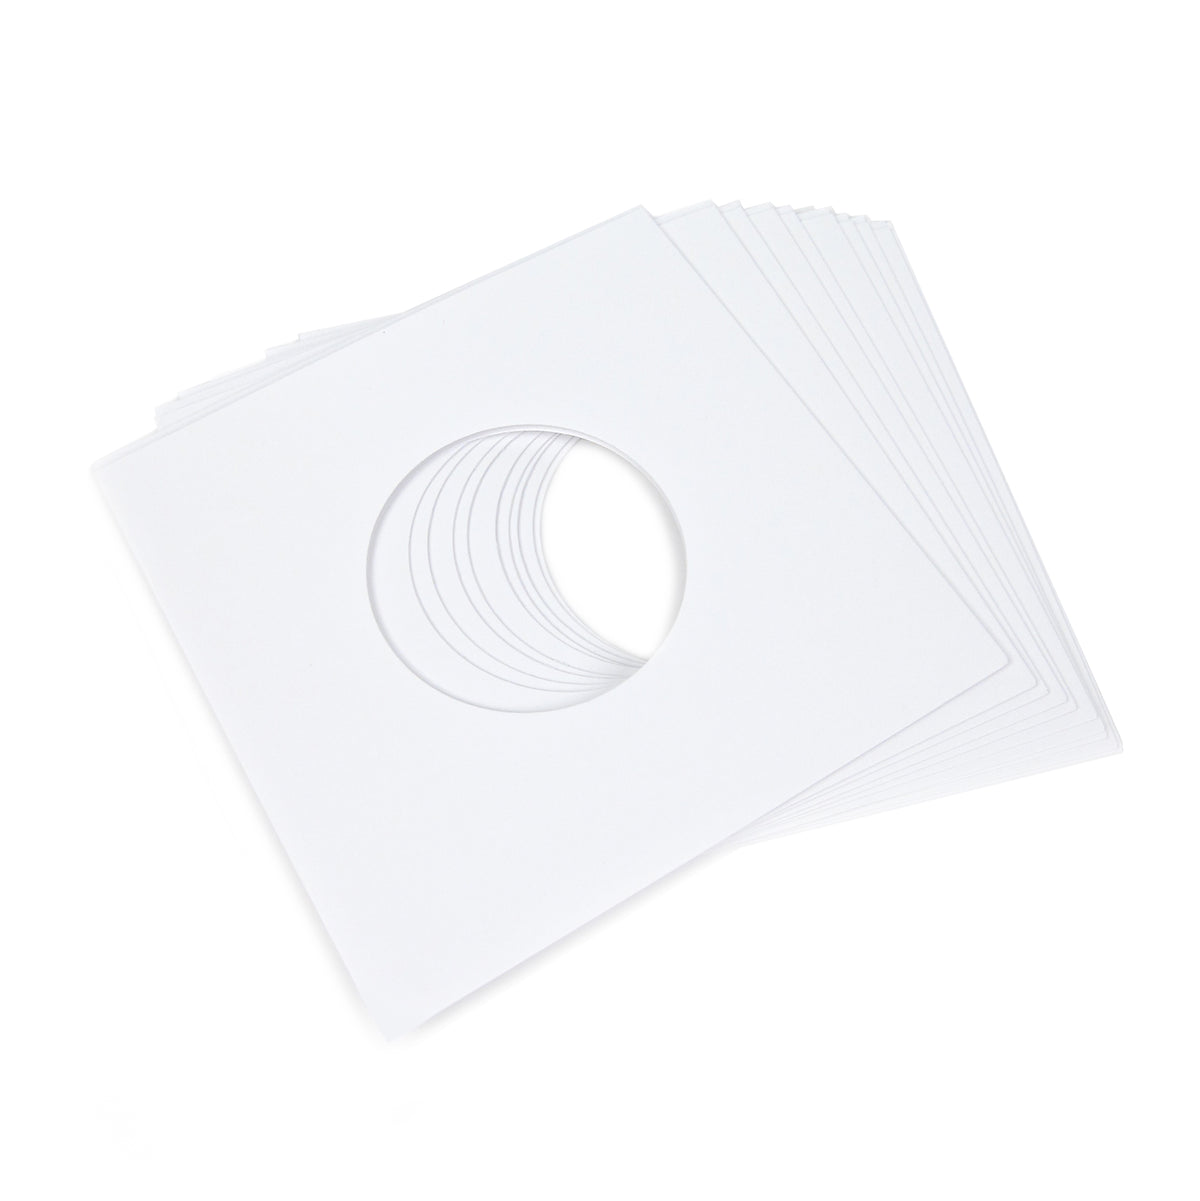 "Record Supply Co: 7"" Outer Jacket - White (10 Units)"